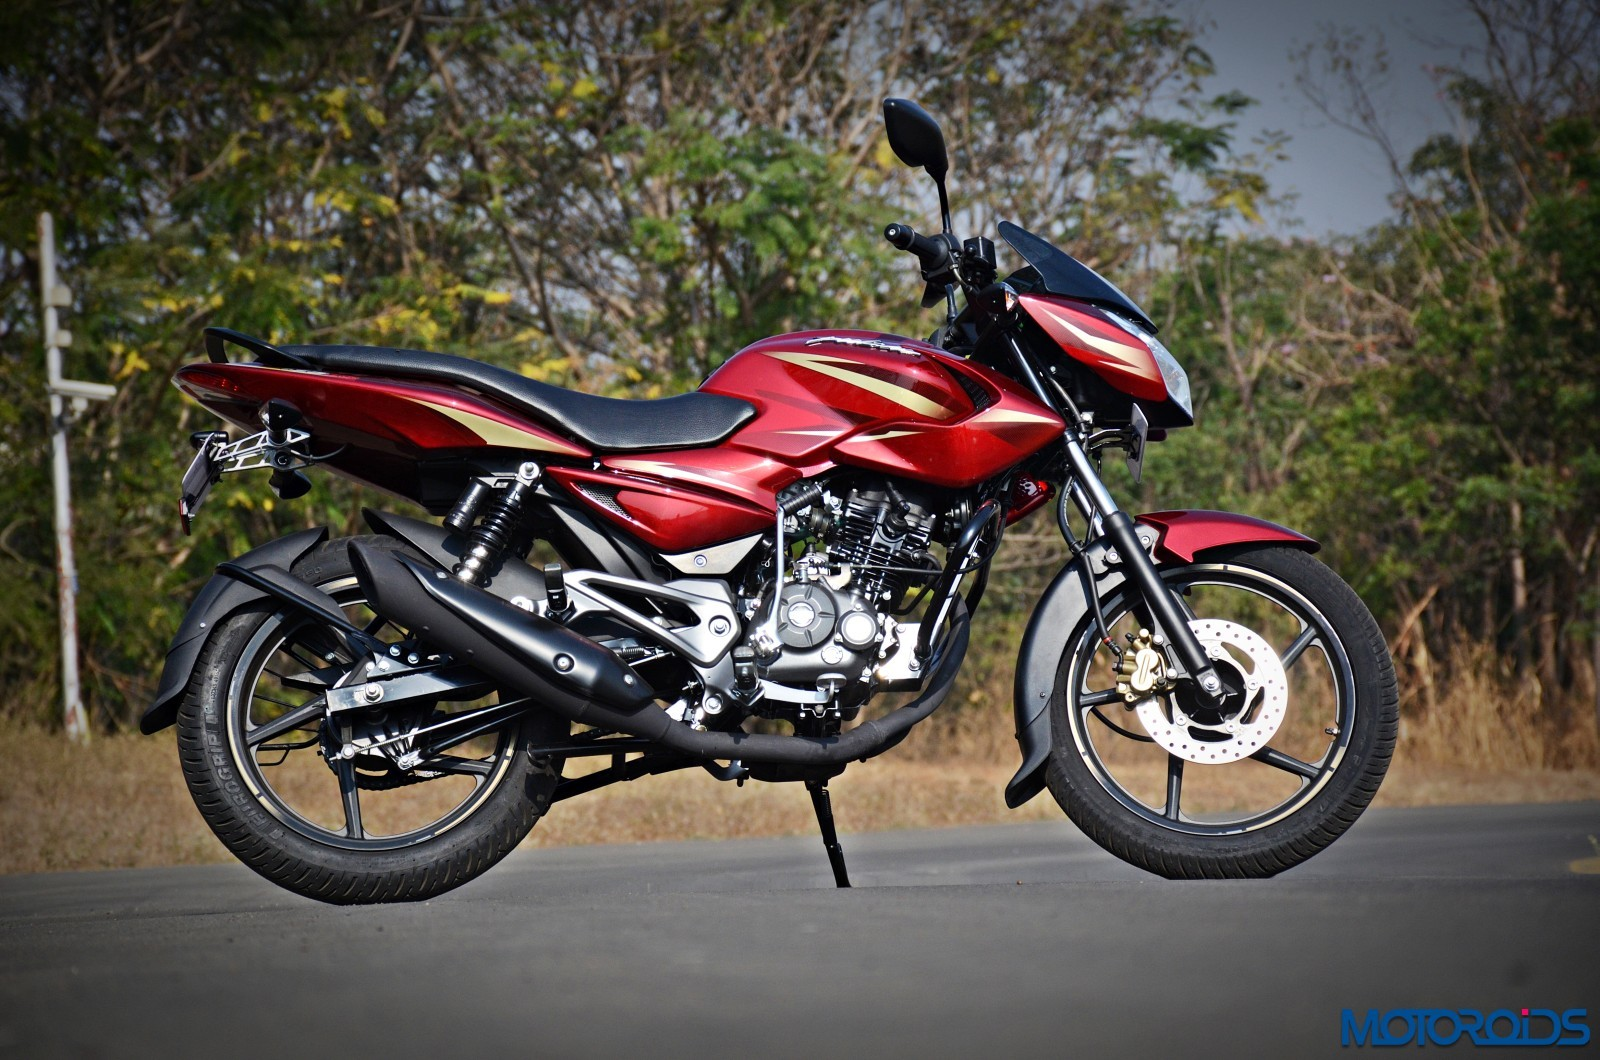 New 2017 bajaj pulsar 135 ls first ride review price images specs and changes motoroids